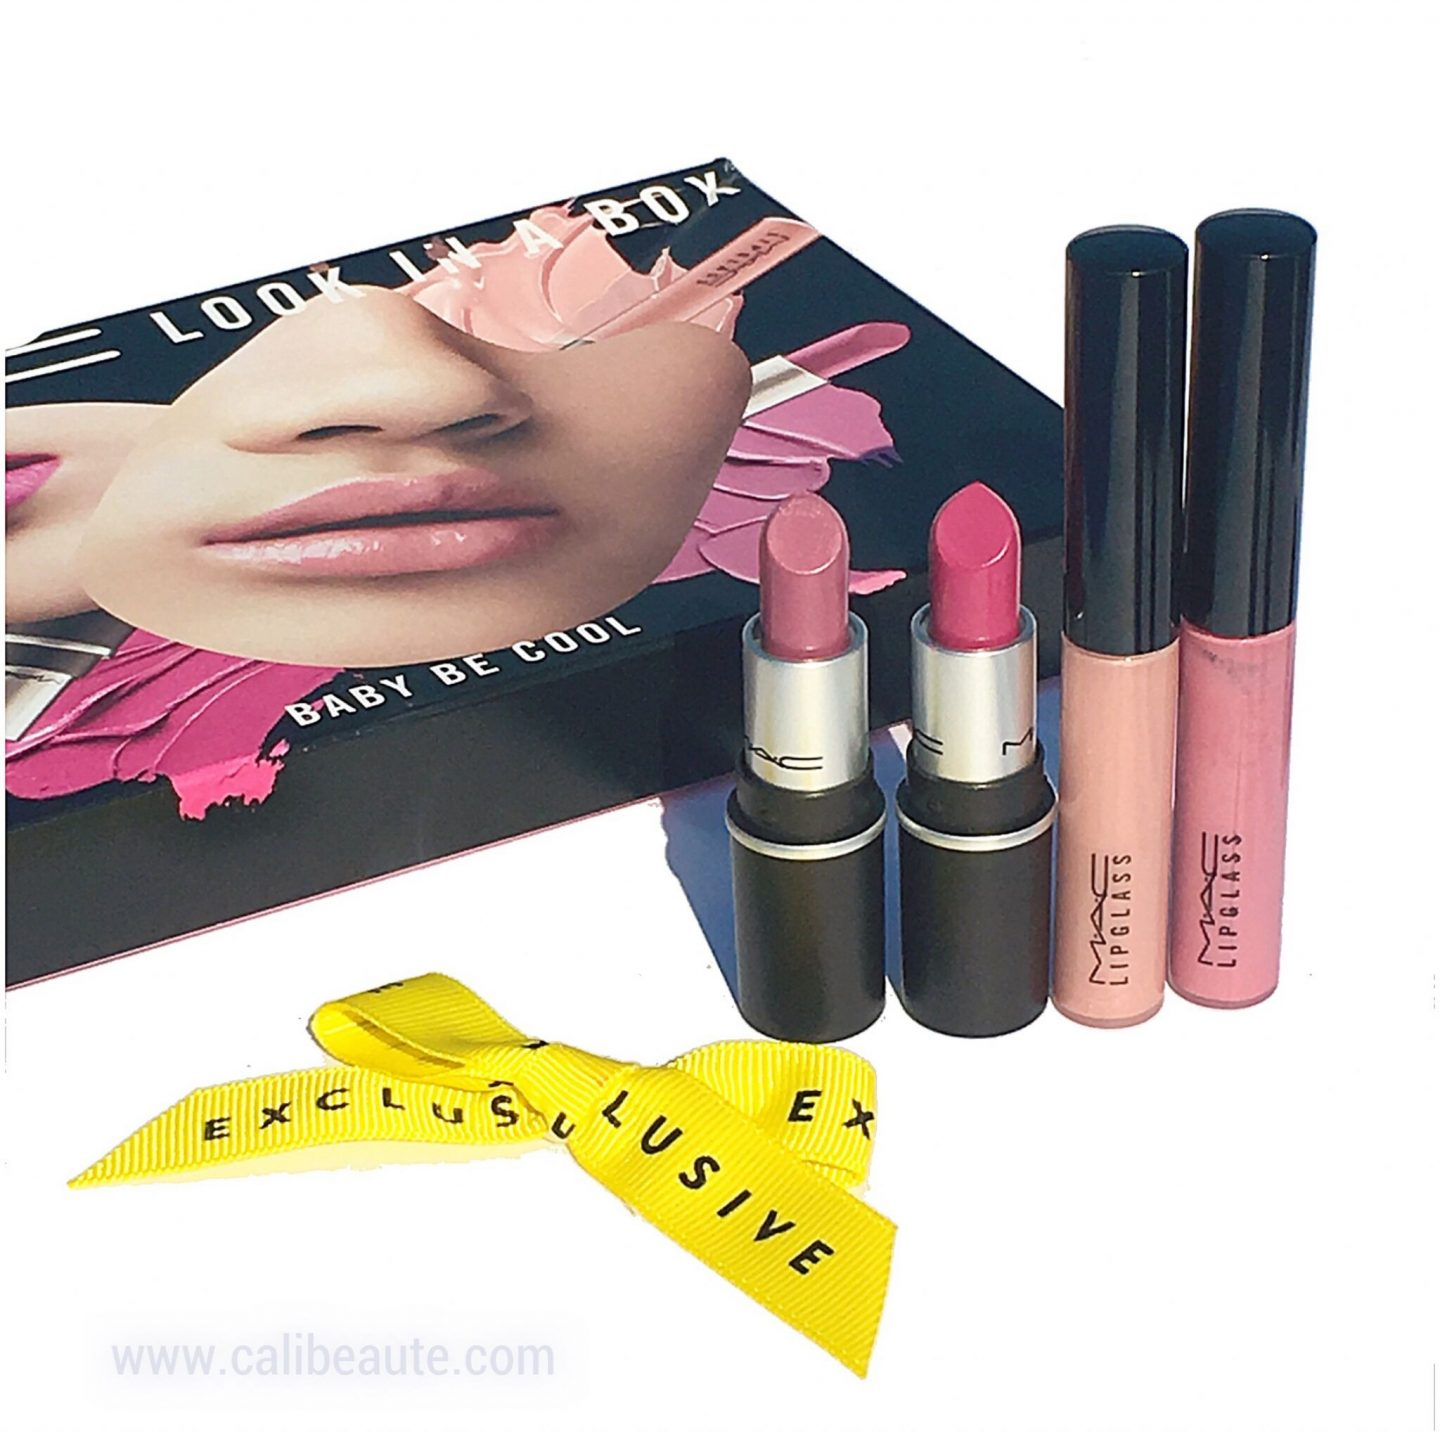 MAC Look in A Box Kit Baby Be Cool Nordstrom Swatches |www.calibeaute.com